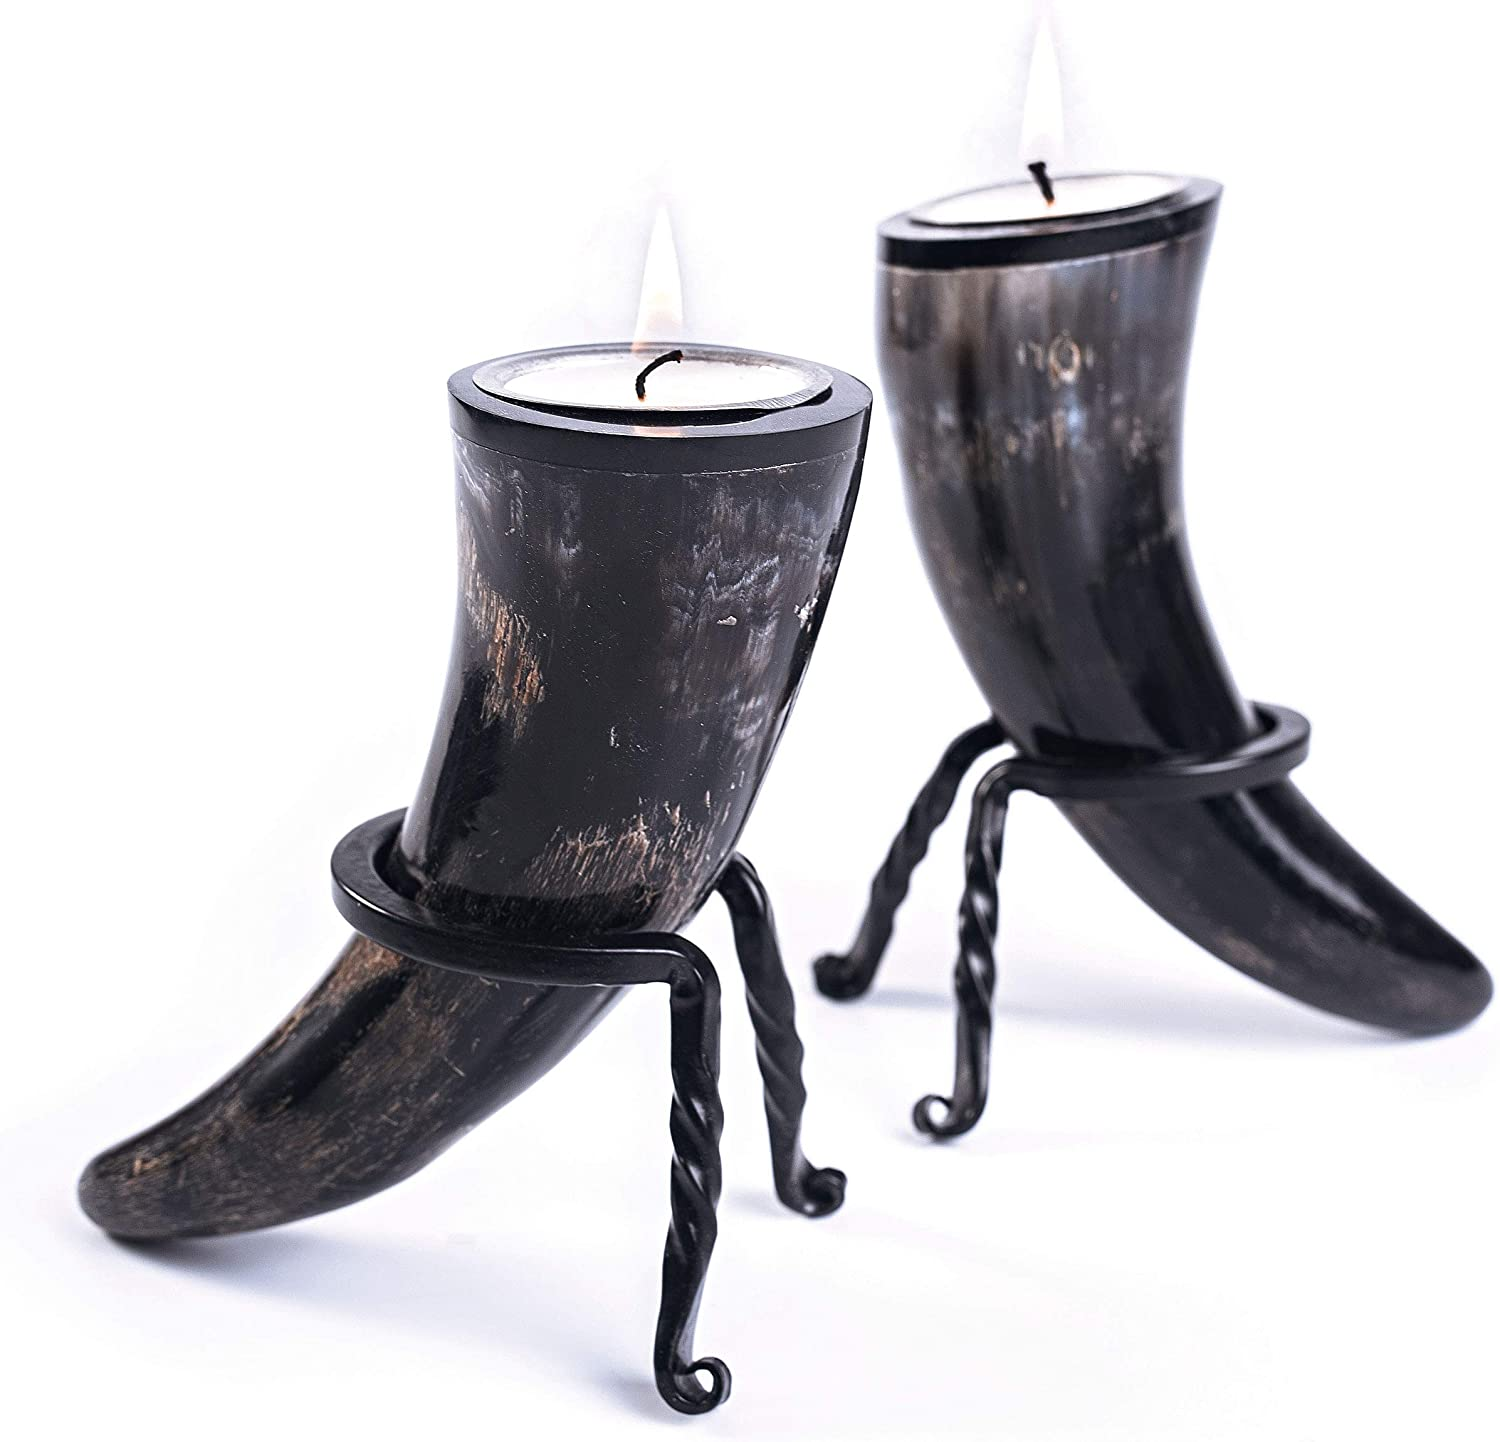 Genuine Ox-Horn Candle Sticks 2 with Light Wro Now on sale Candles and Tea Popular popular